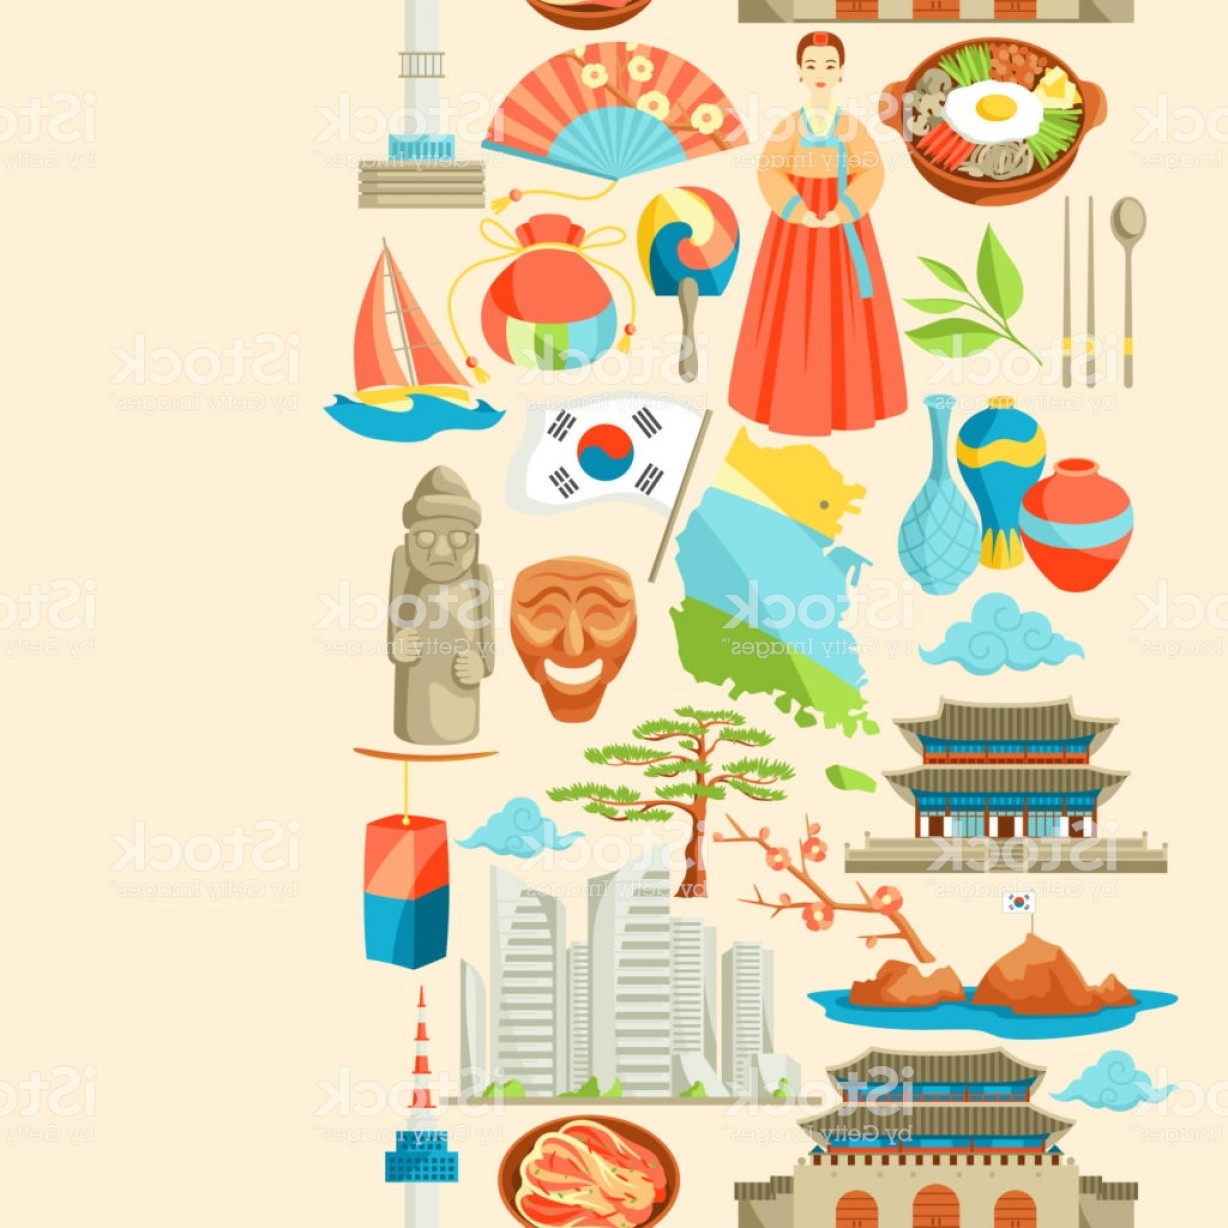 320 Vector: South Korea Seamless Pattern Korean Traditional Symbols And Objects Gm